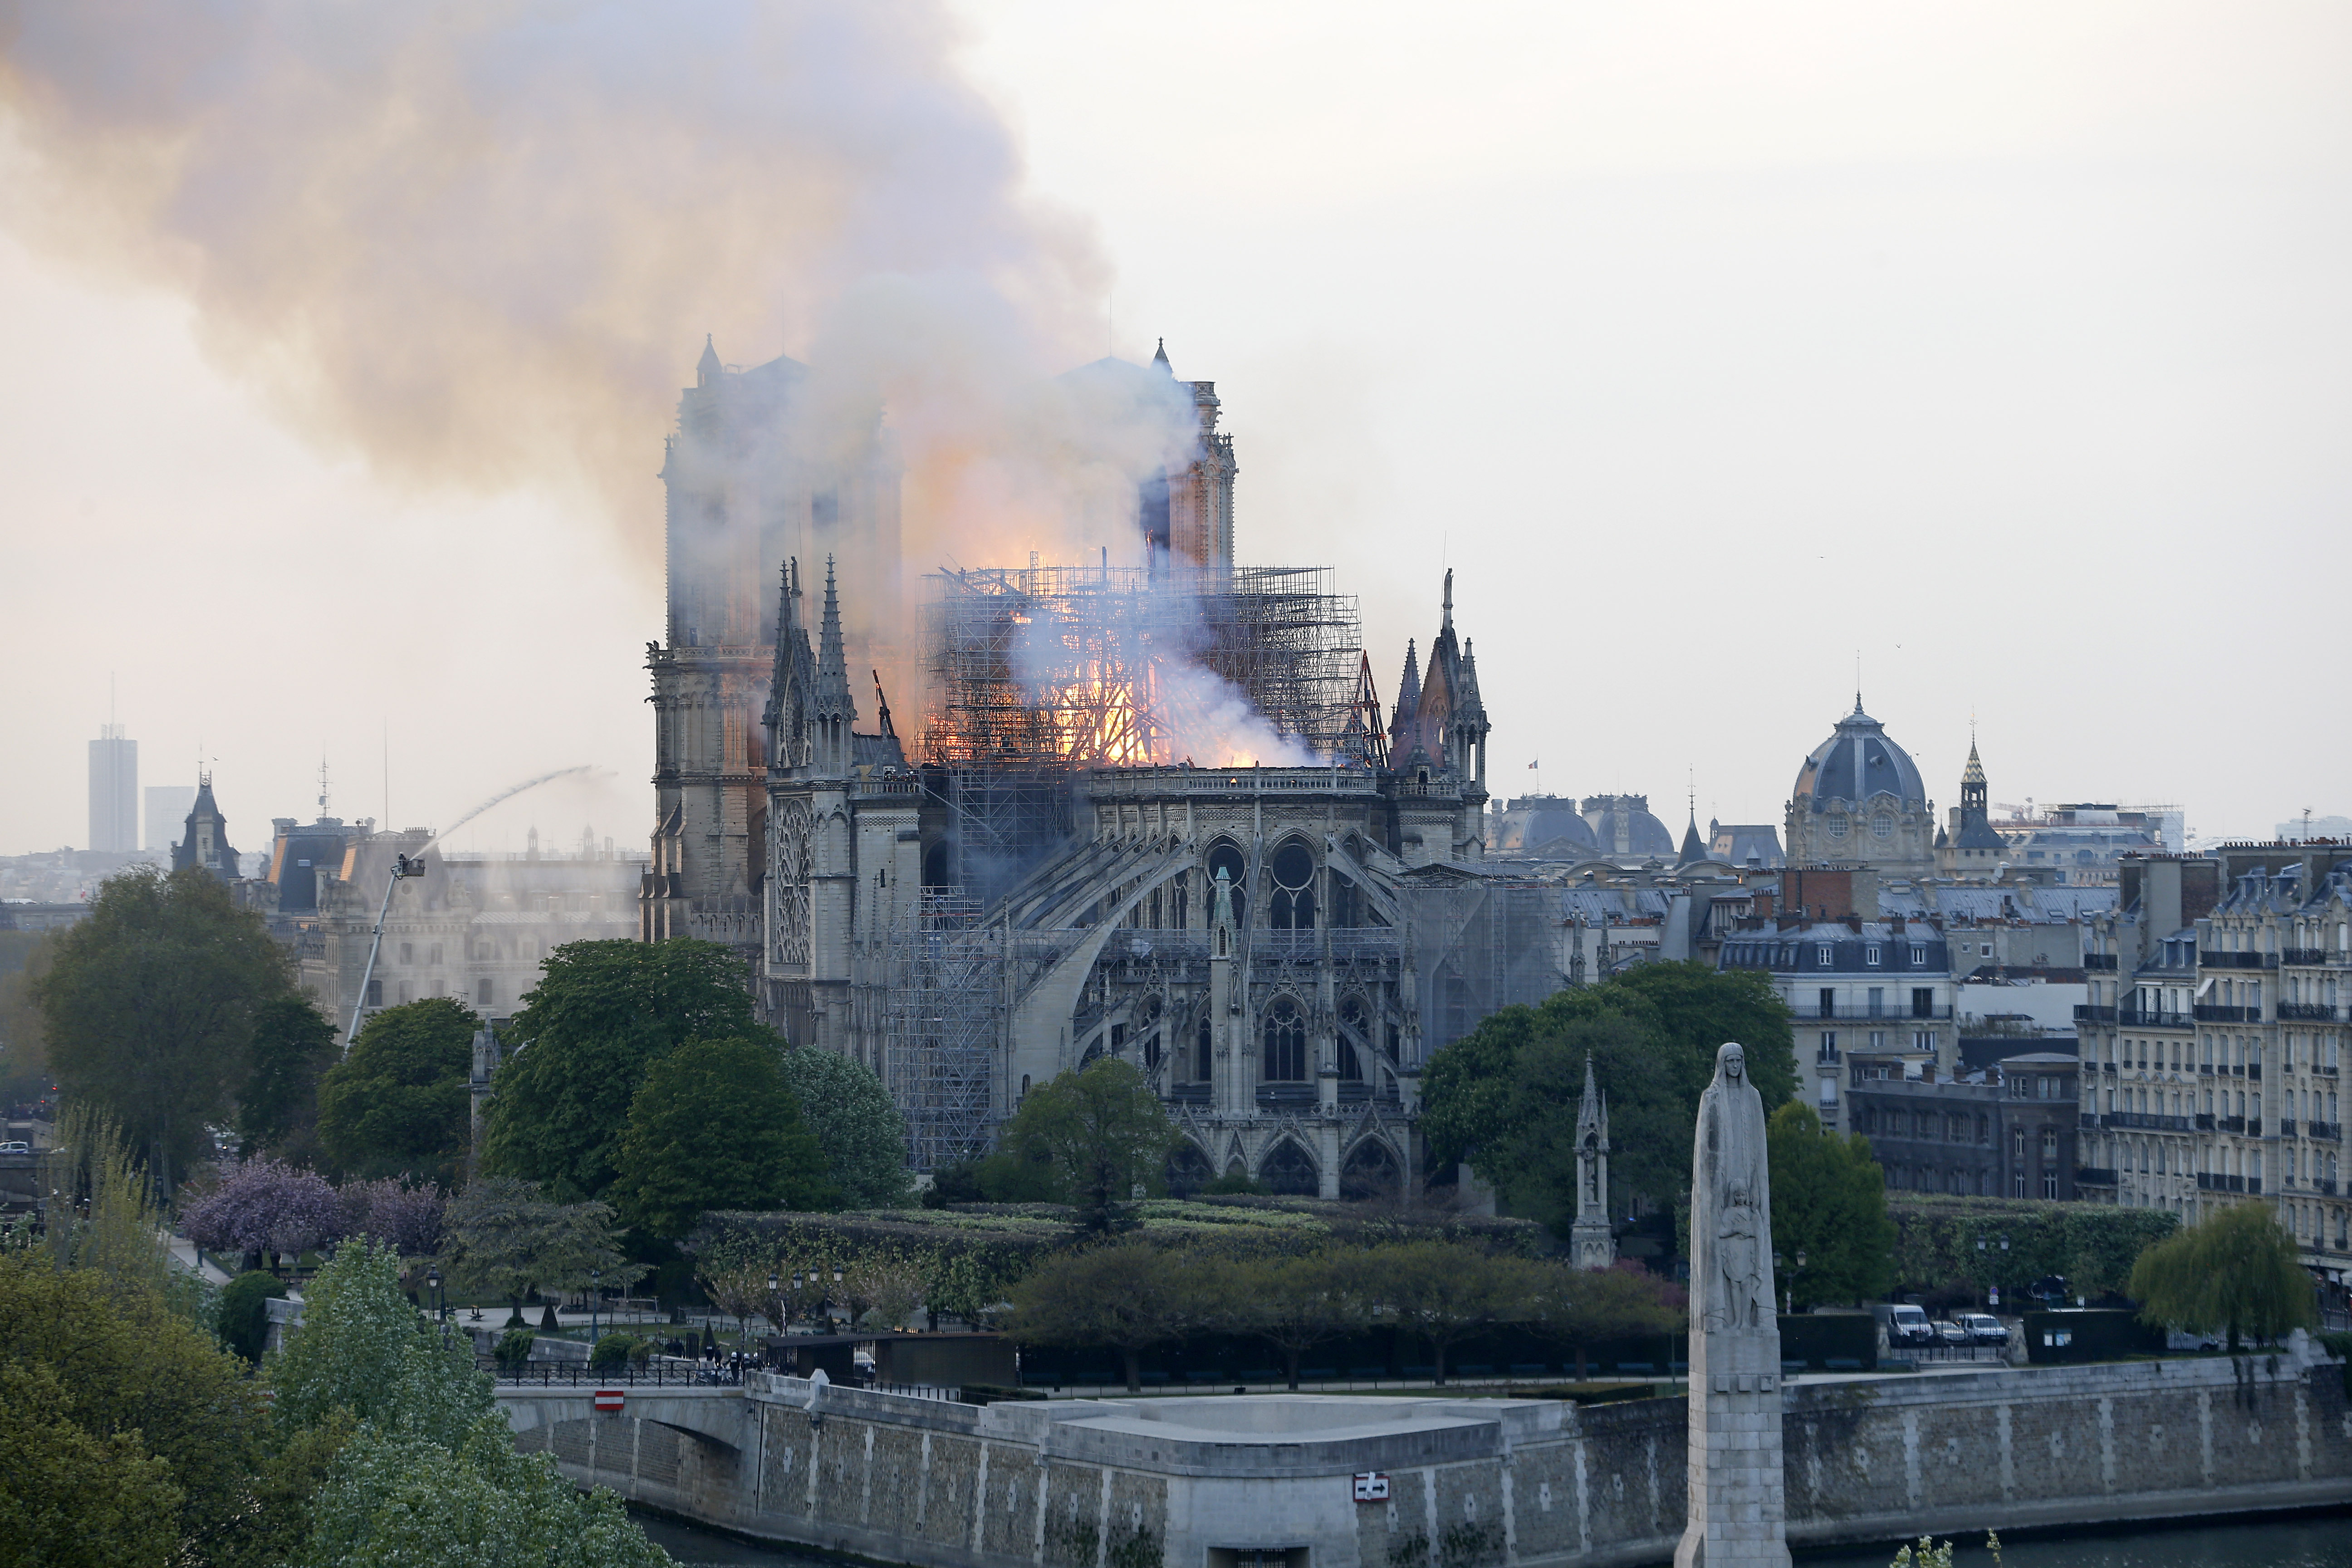 Notre Dame fire: why the cathedral matters, in one Victor Hugo passage